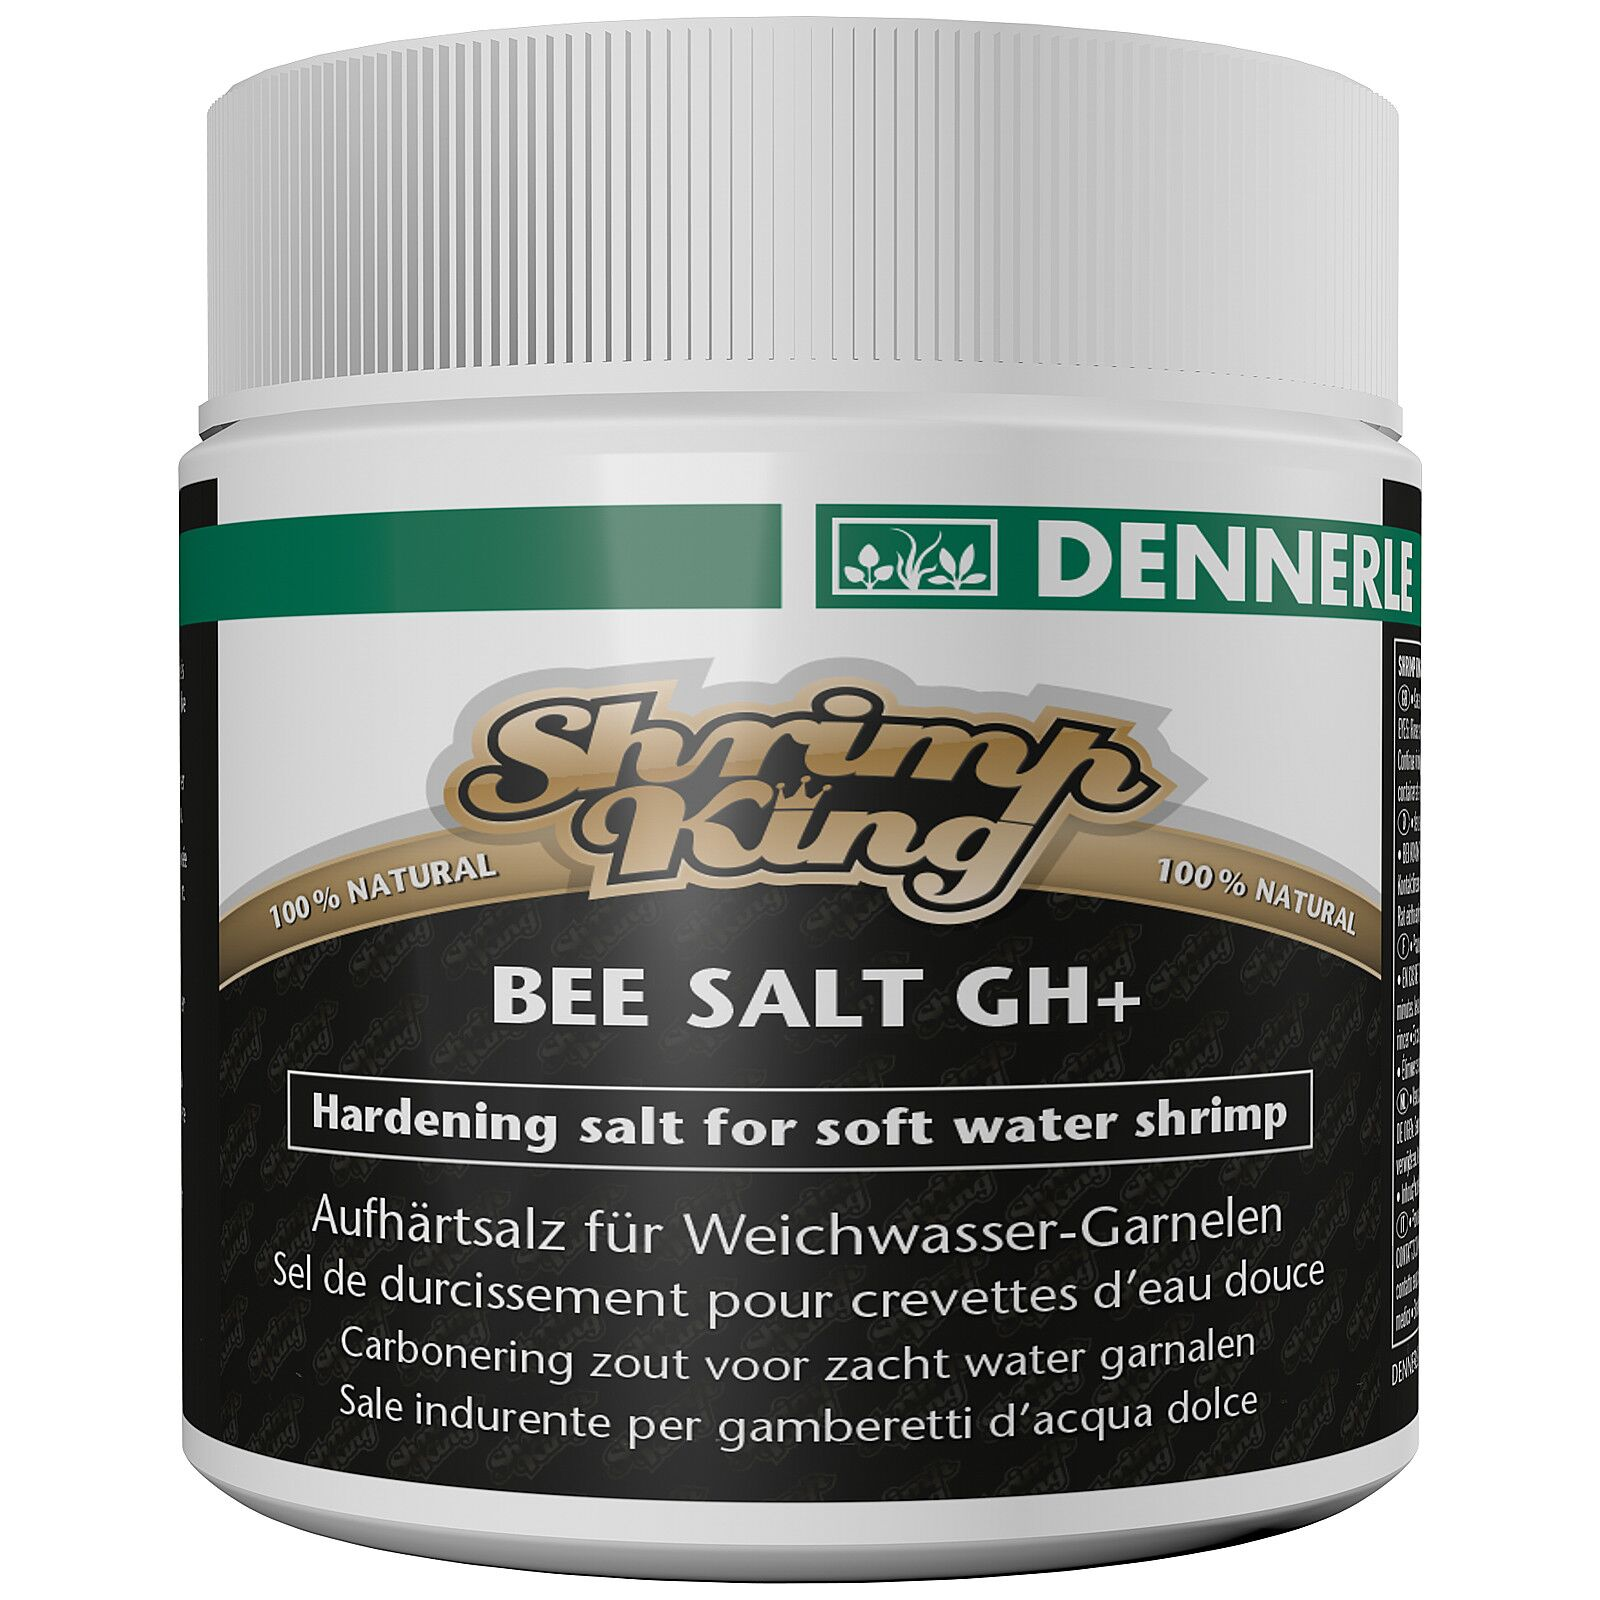 Dennerle - Shrimp King - Bee Salt GH+